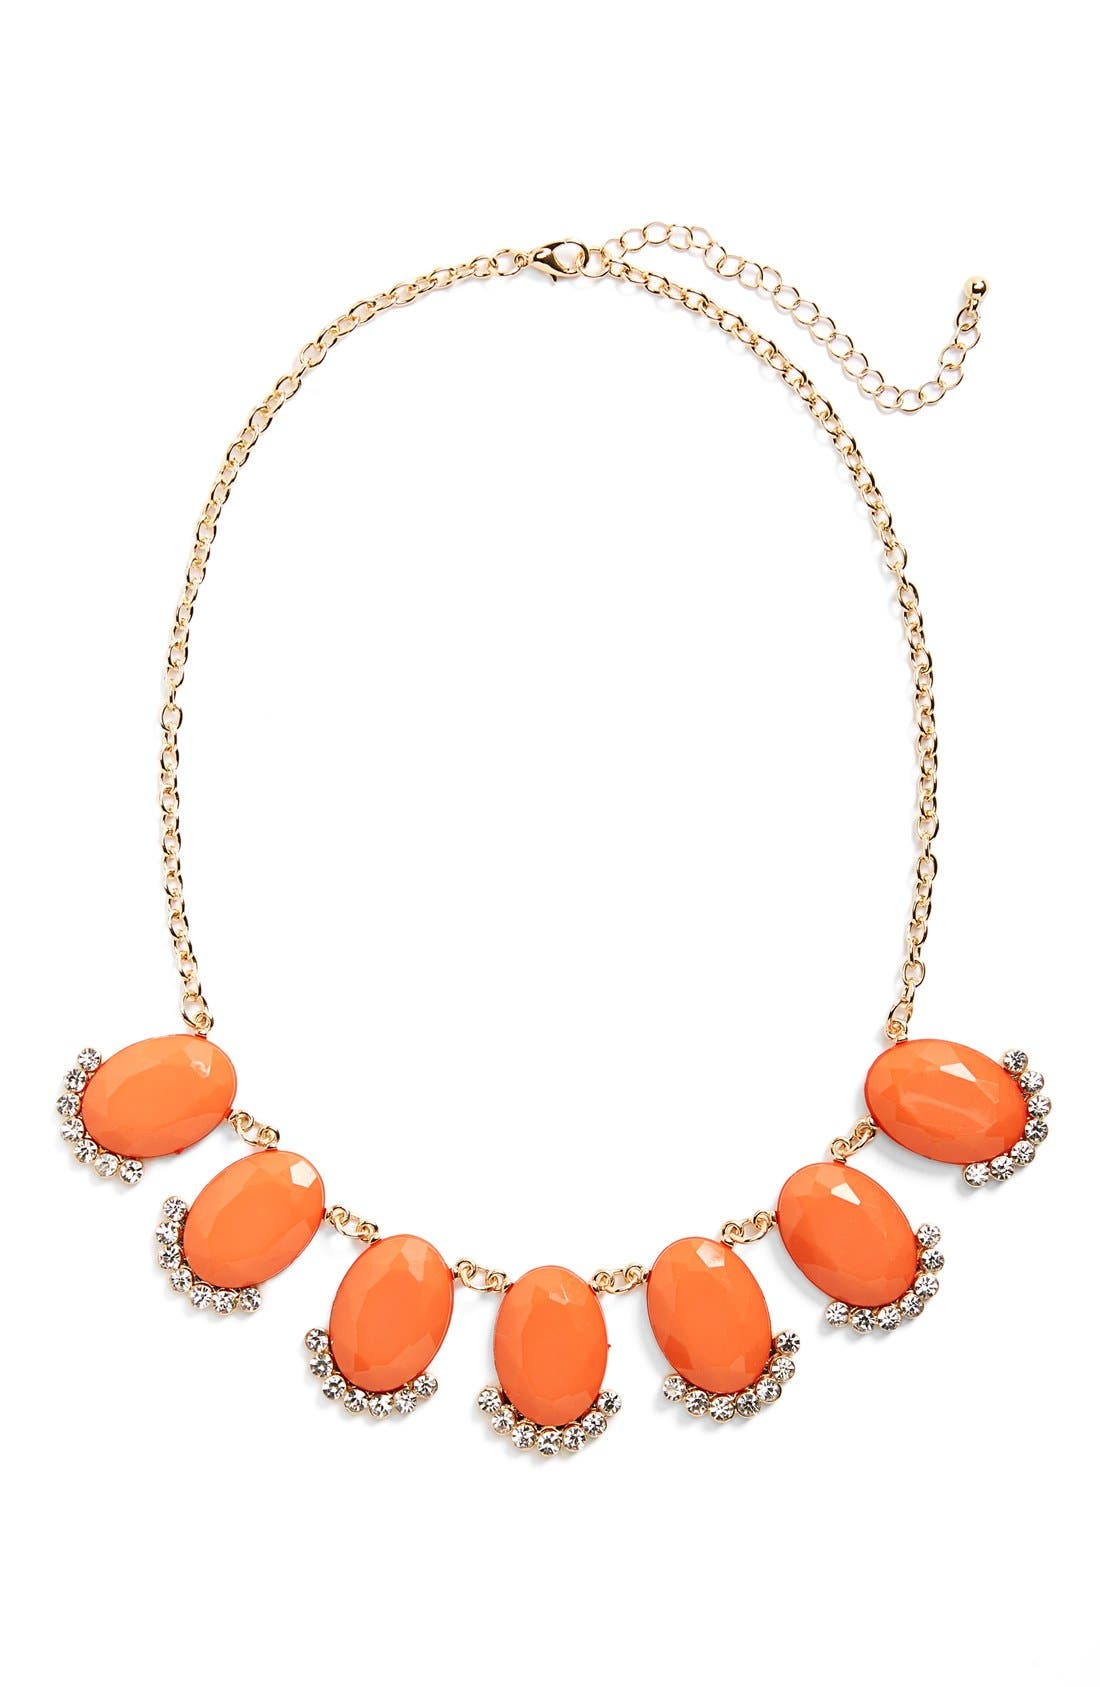 Alternate Image 1 Selected - BP. Stone Statement Necklace